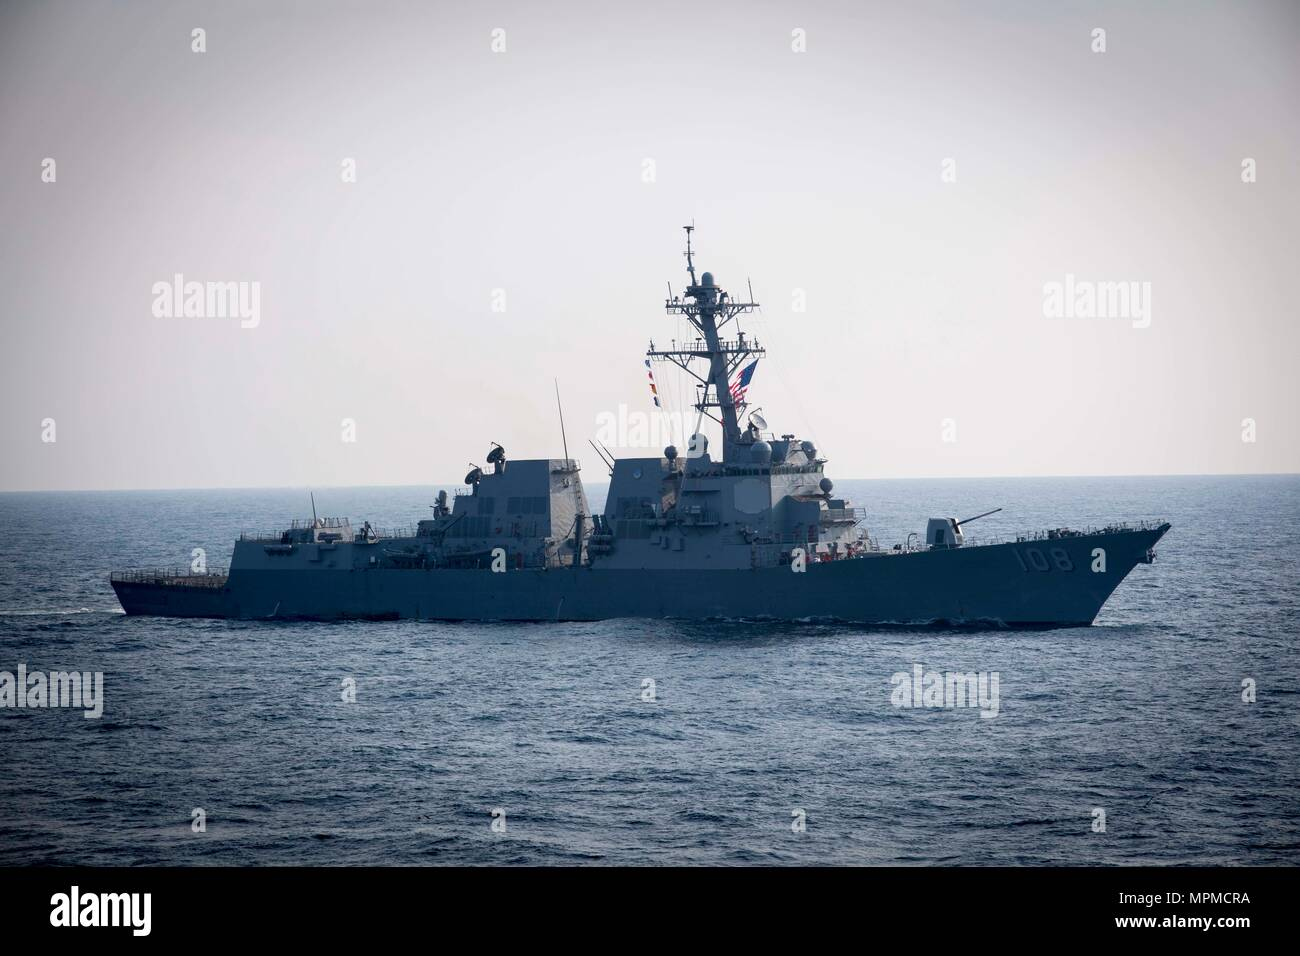 WATERS EAST OF THE KOREAN PENINSULA (March 22, 2017) The Arleigh Burke-class guided-missile destroyer USS Wayne E. Meyer (DDG 108) steams behind USS Stethem (DDG 63) as the ships participate in surface maneuvers with several other U.S. and Republic of Korea Navy ships and submarines during Foal Eagle (FE) 17. FE 17 is a series of annual training events designed to increase readiness to defend the ROK, protect the region, and maintain stability in the Korean Peninsula. (U.S. Navy photo by Mass Communication Specialist 2nd Class Ryan Harper/ Released) - Stock Image